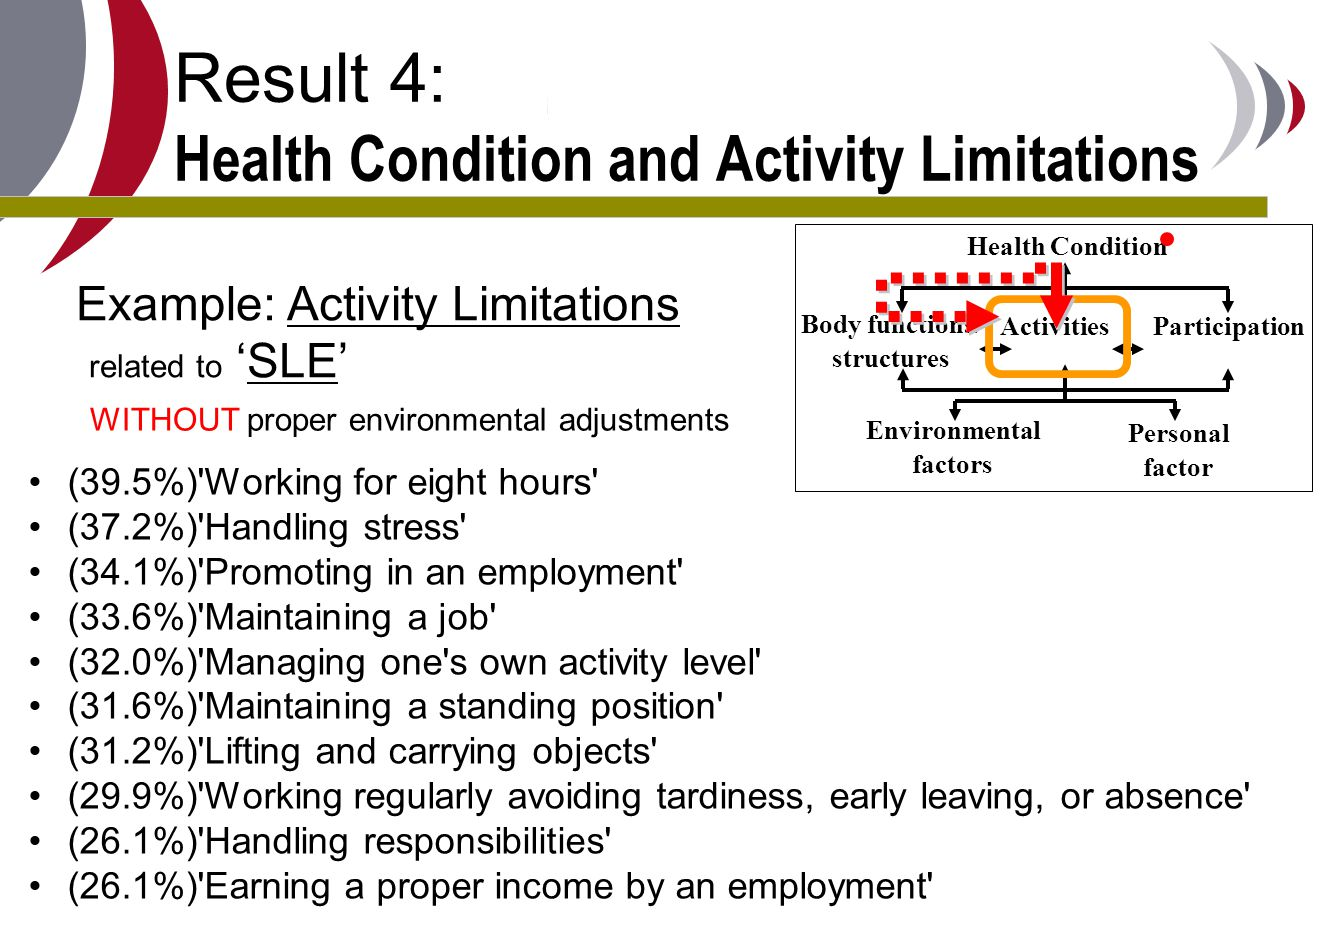 Result 4: Health Condition and Activity Limitations